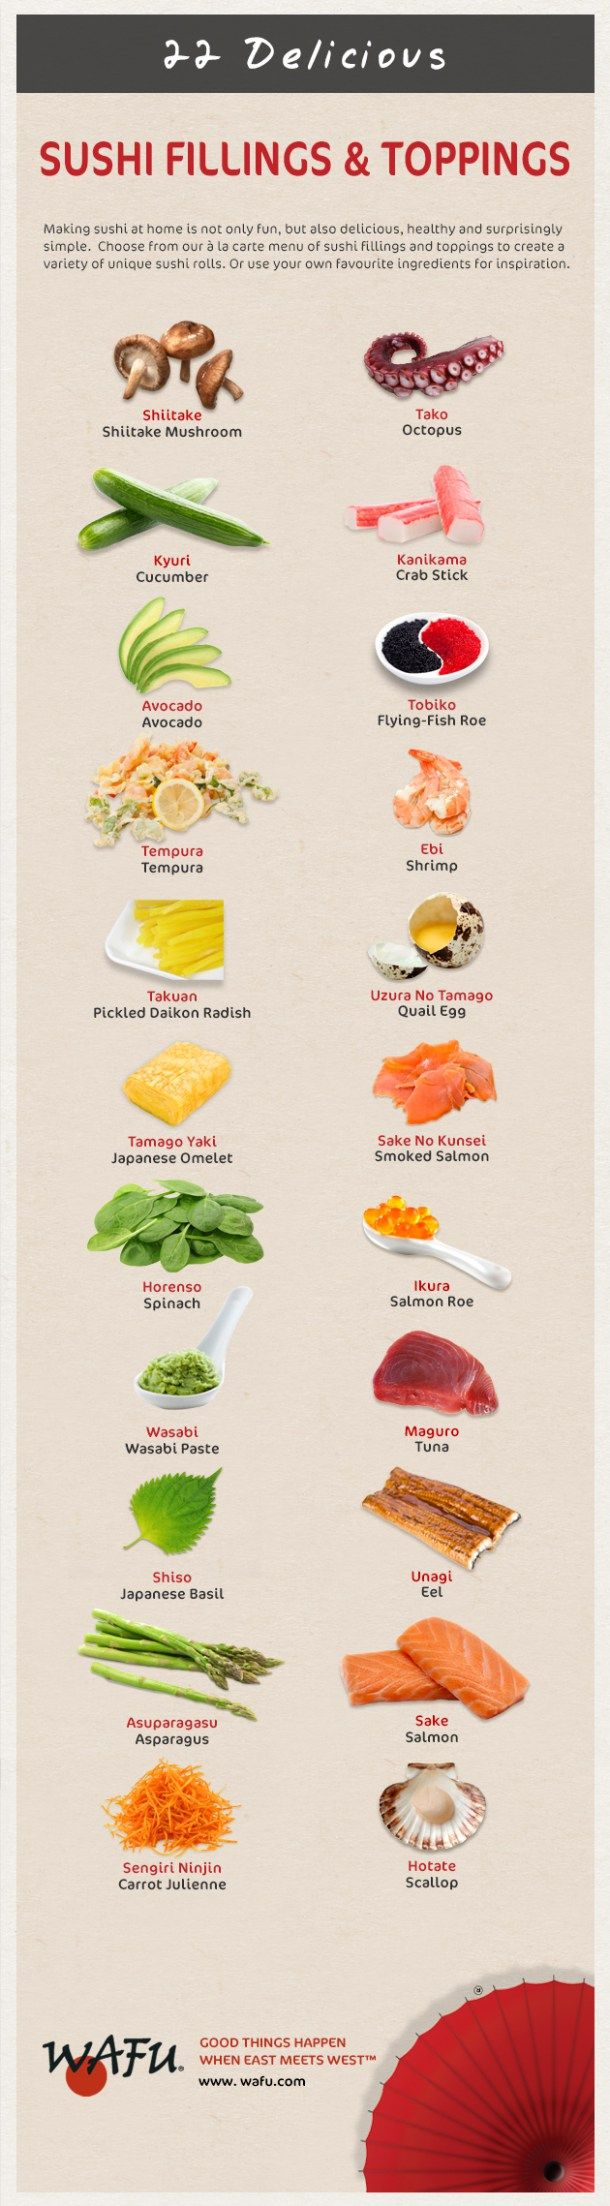 Love sushi? Love Japanese? Wanna know how to order your favourites in the Japanese language? Check out this post on Team Japanese of the Japanese sushi names and words, including this infographic of 22 Delicious Sushi Fillings & Toppings provided by Wafu Blog